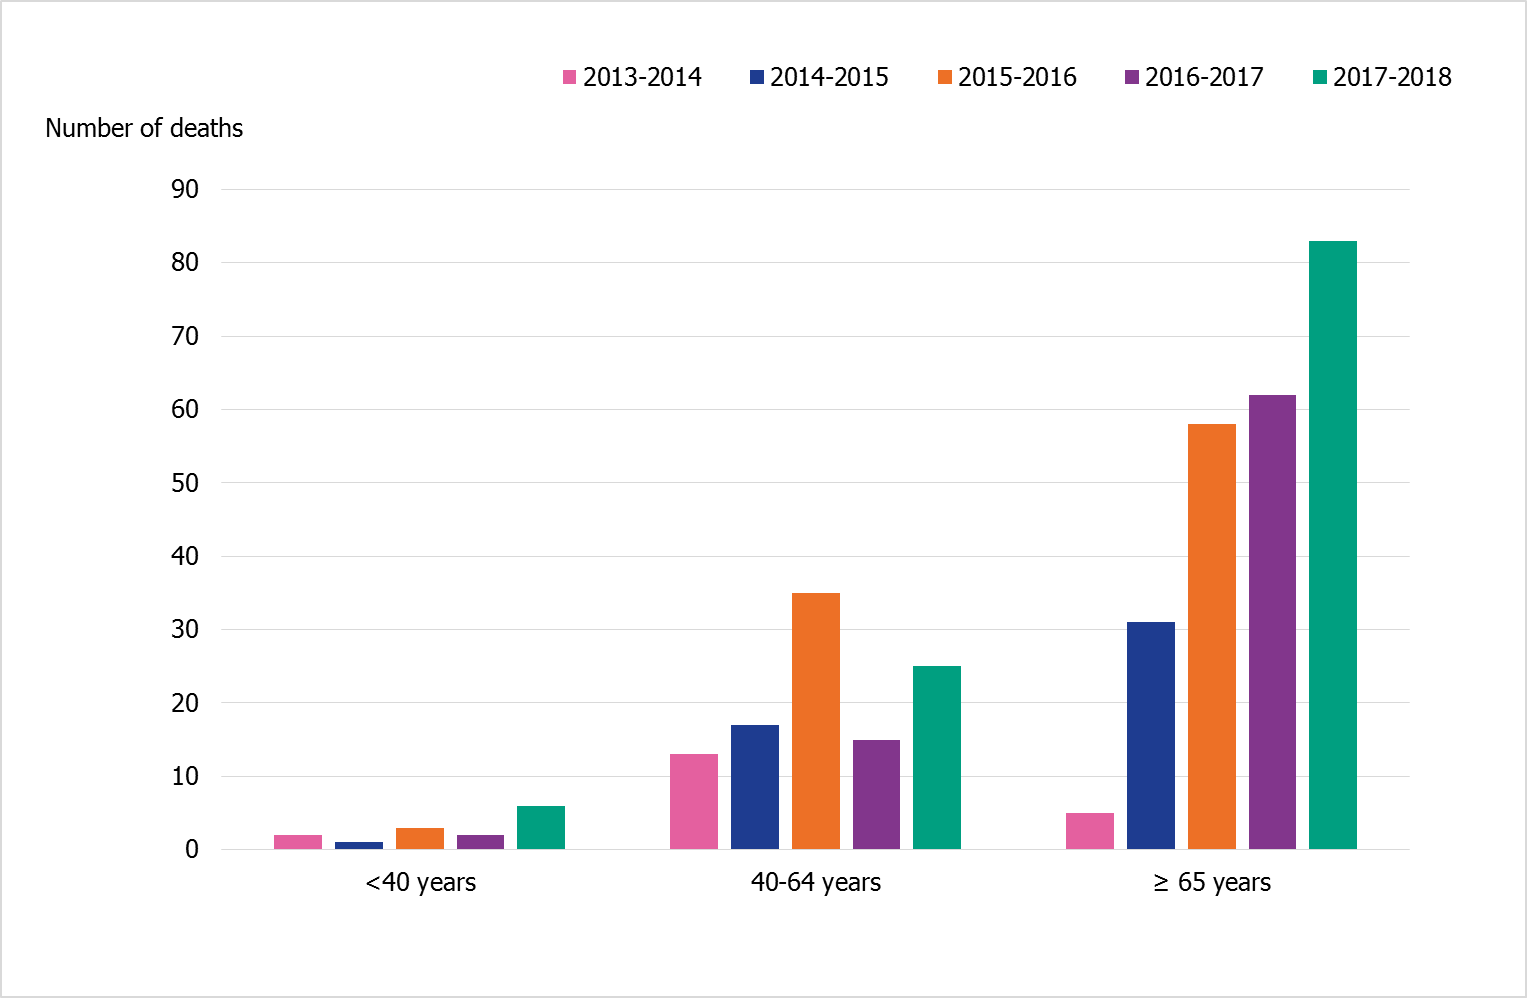 Age distribution of deaths among patients in intensive care with influenza during five seasons in age groups under 40 years, 40-64 years, and 65+. The number of deaths is consitently highest among 65+. 2015-2016 sticks out with a higher bar for those 40-64 compared with other seasons.